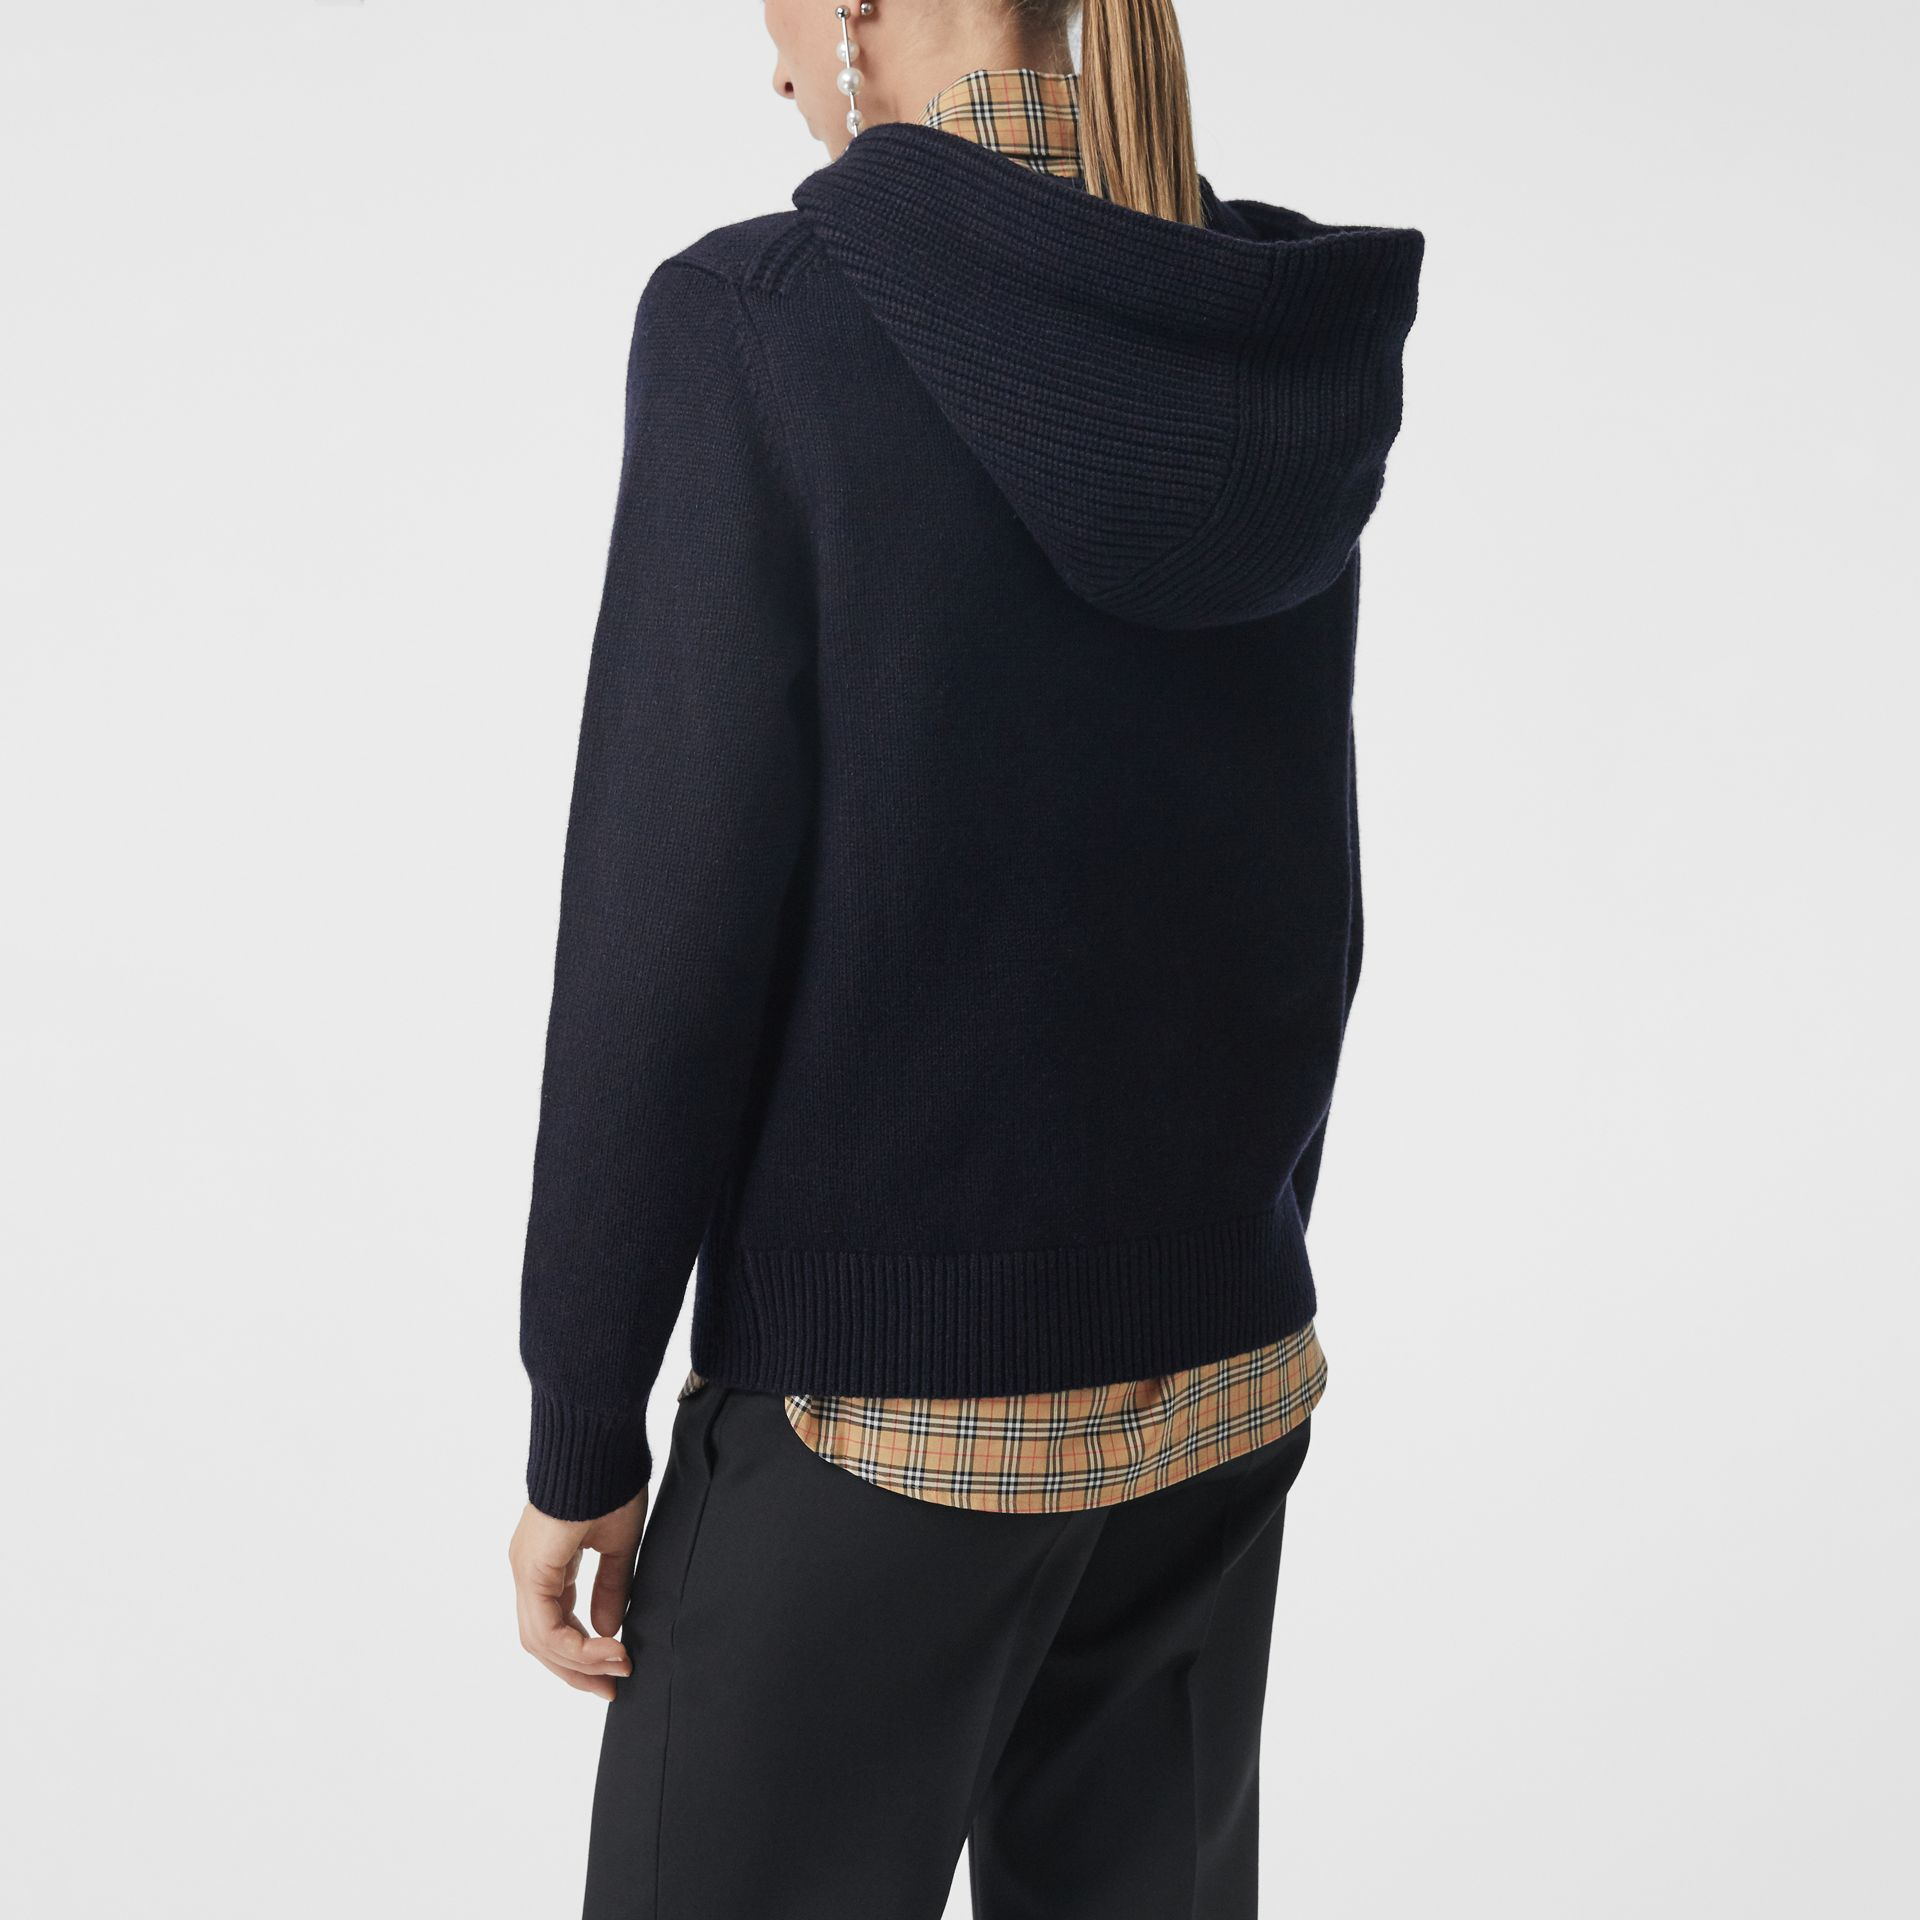 Embroidered Archive Logo Cashmere Hooded Top in Navy - Women | Burberry - gallery image 2